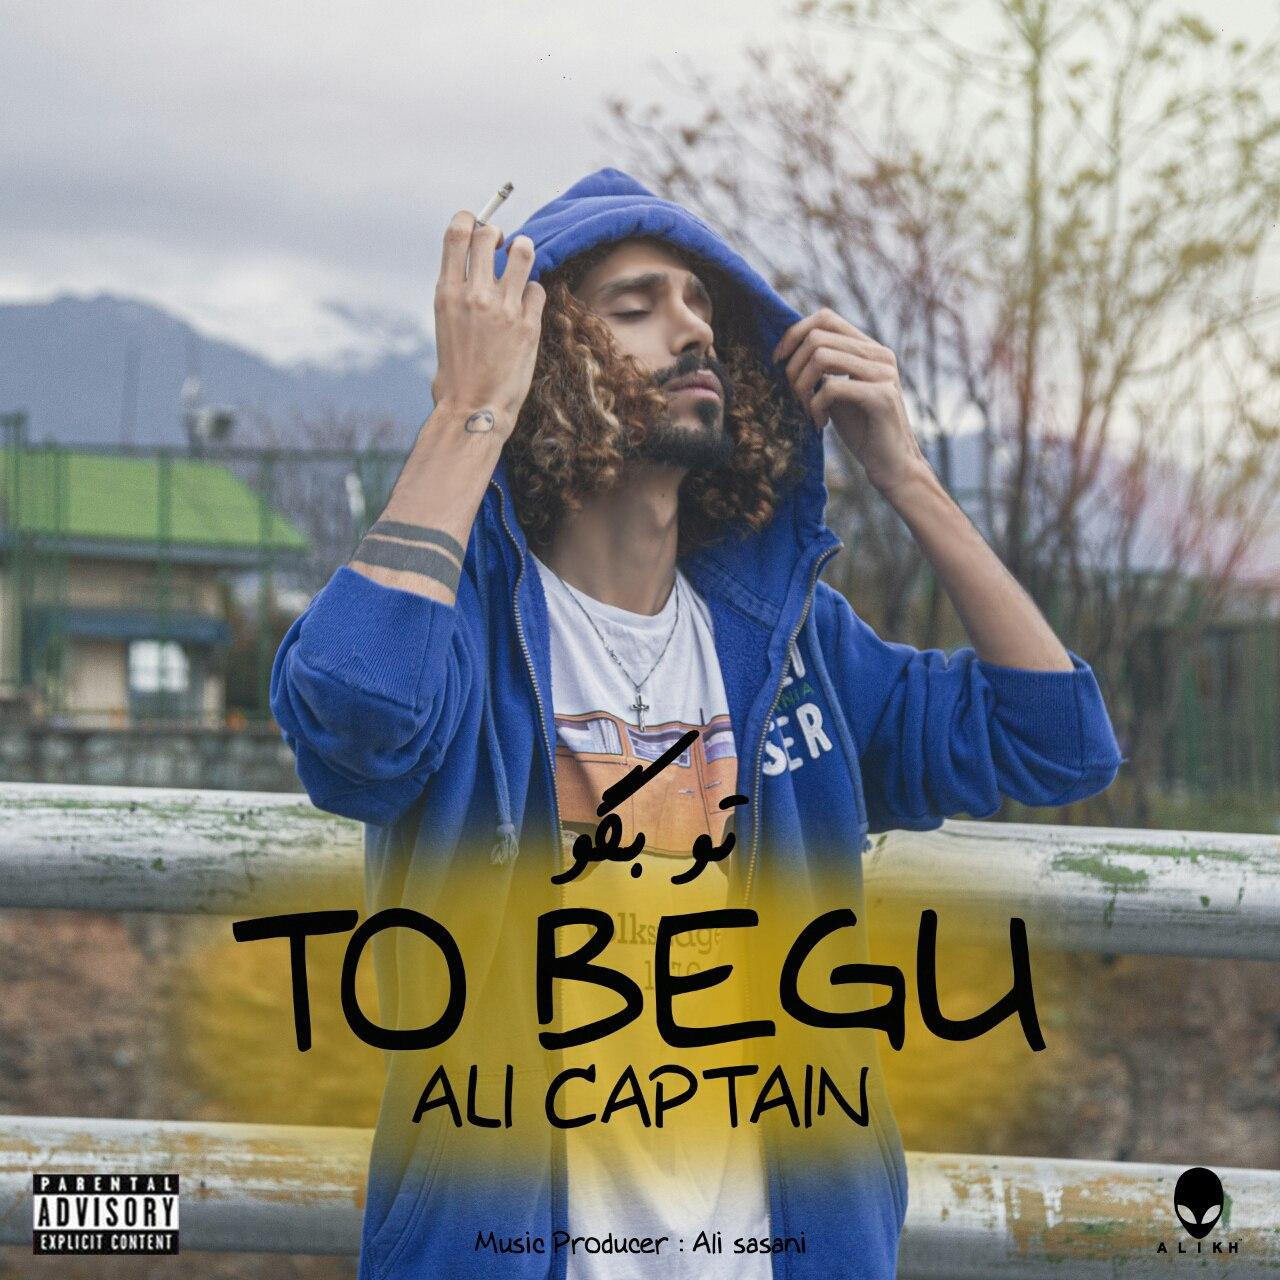 Ali Captain – To Begu